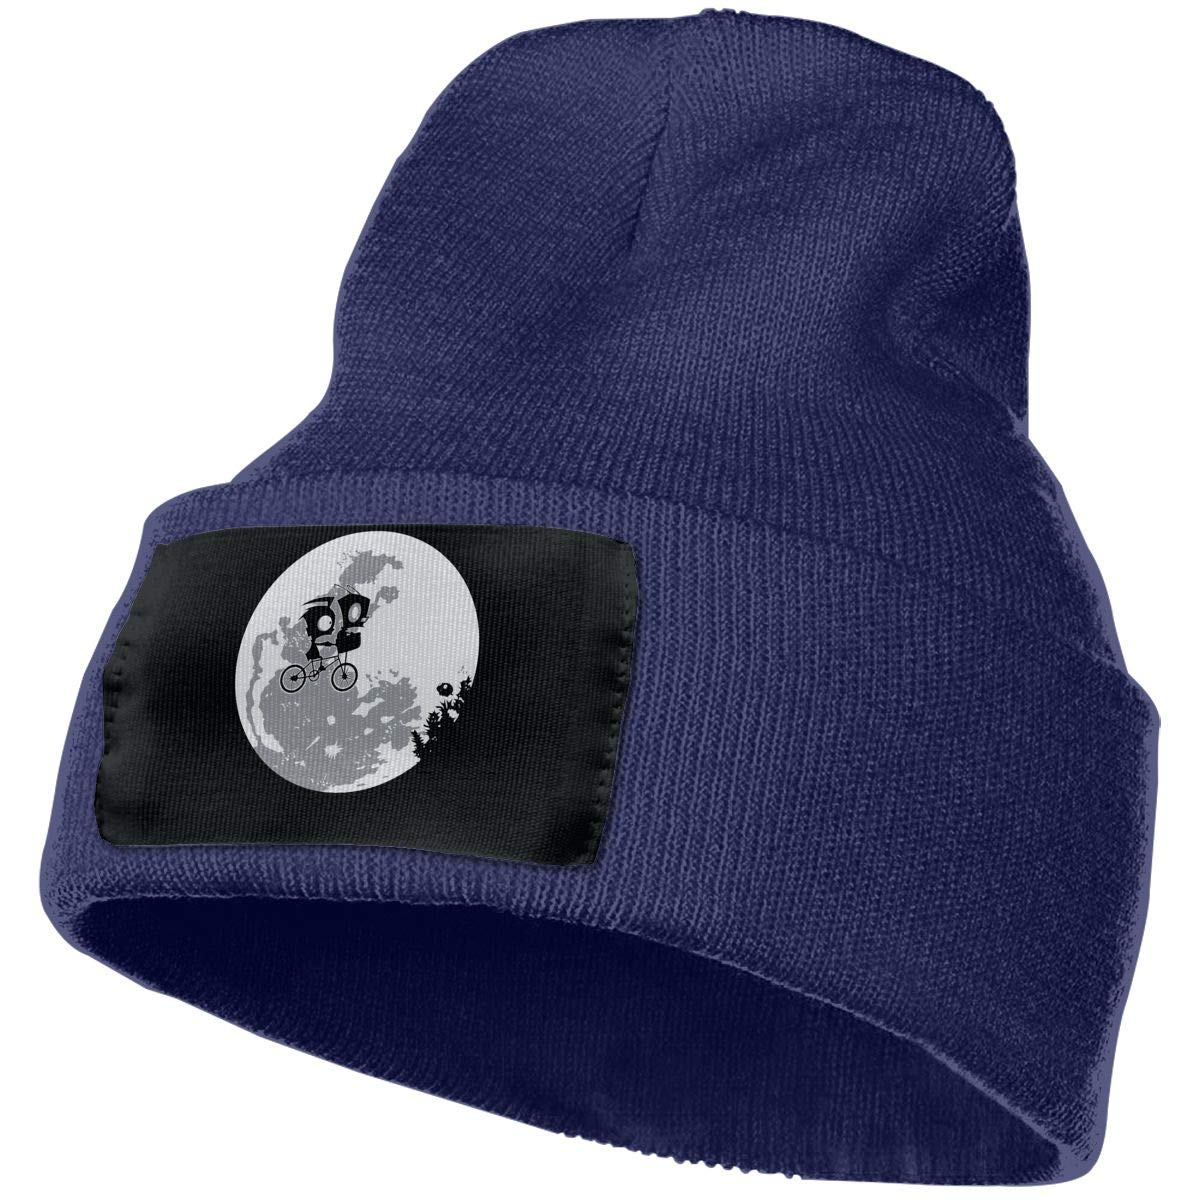 A Child Riding On The Earth Hat for Men and Women Winter Warm Hats Knit Slouchy Thick Skull Cap